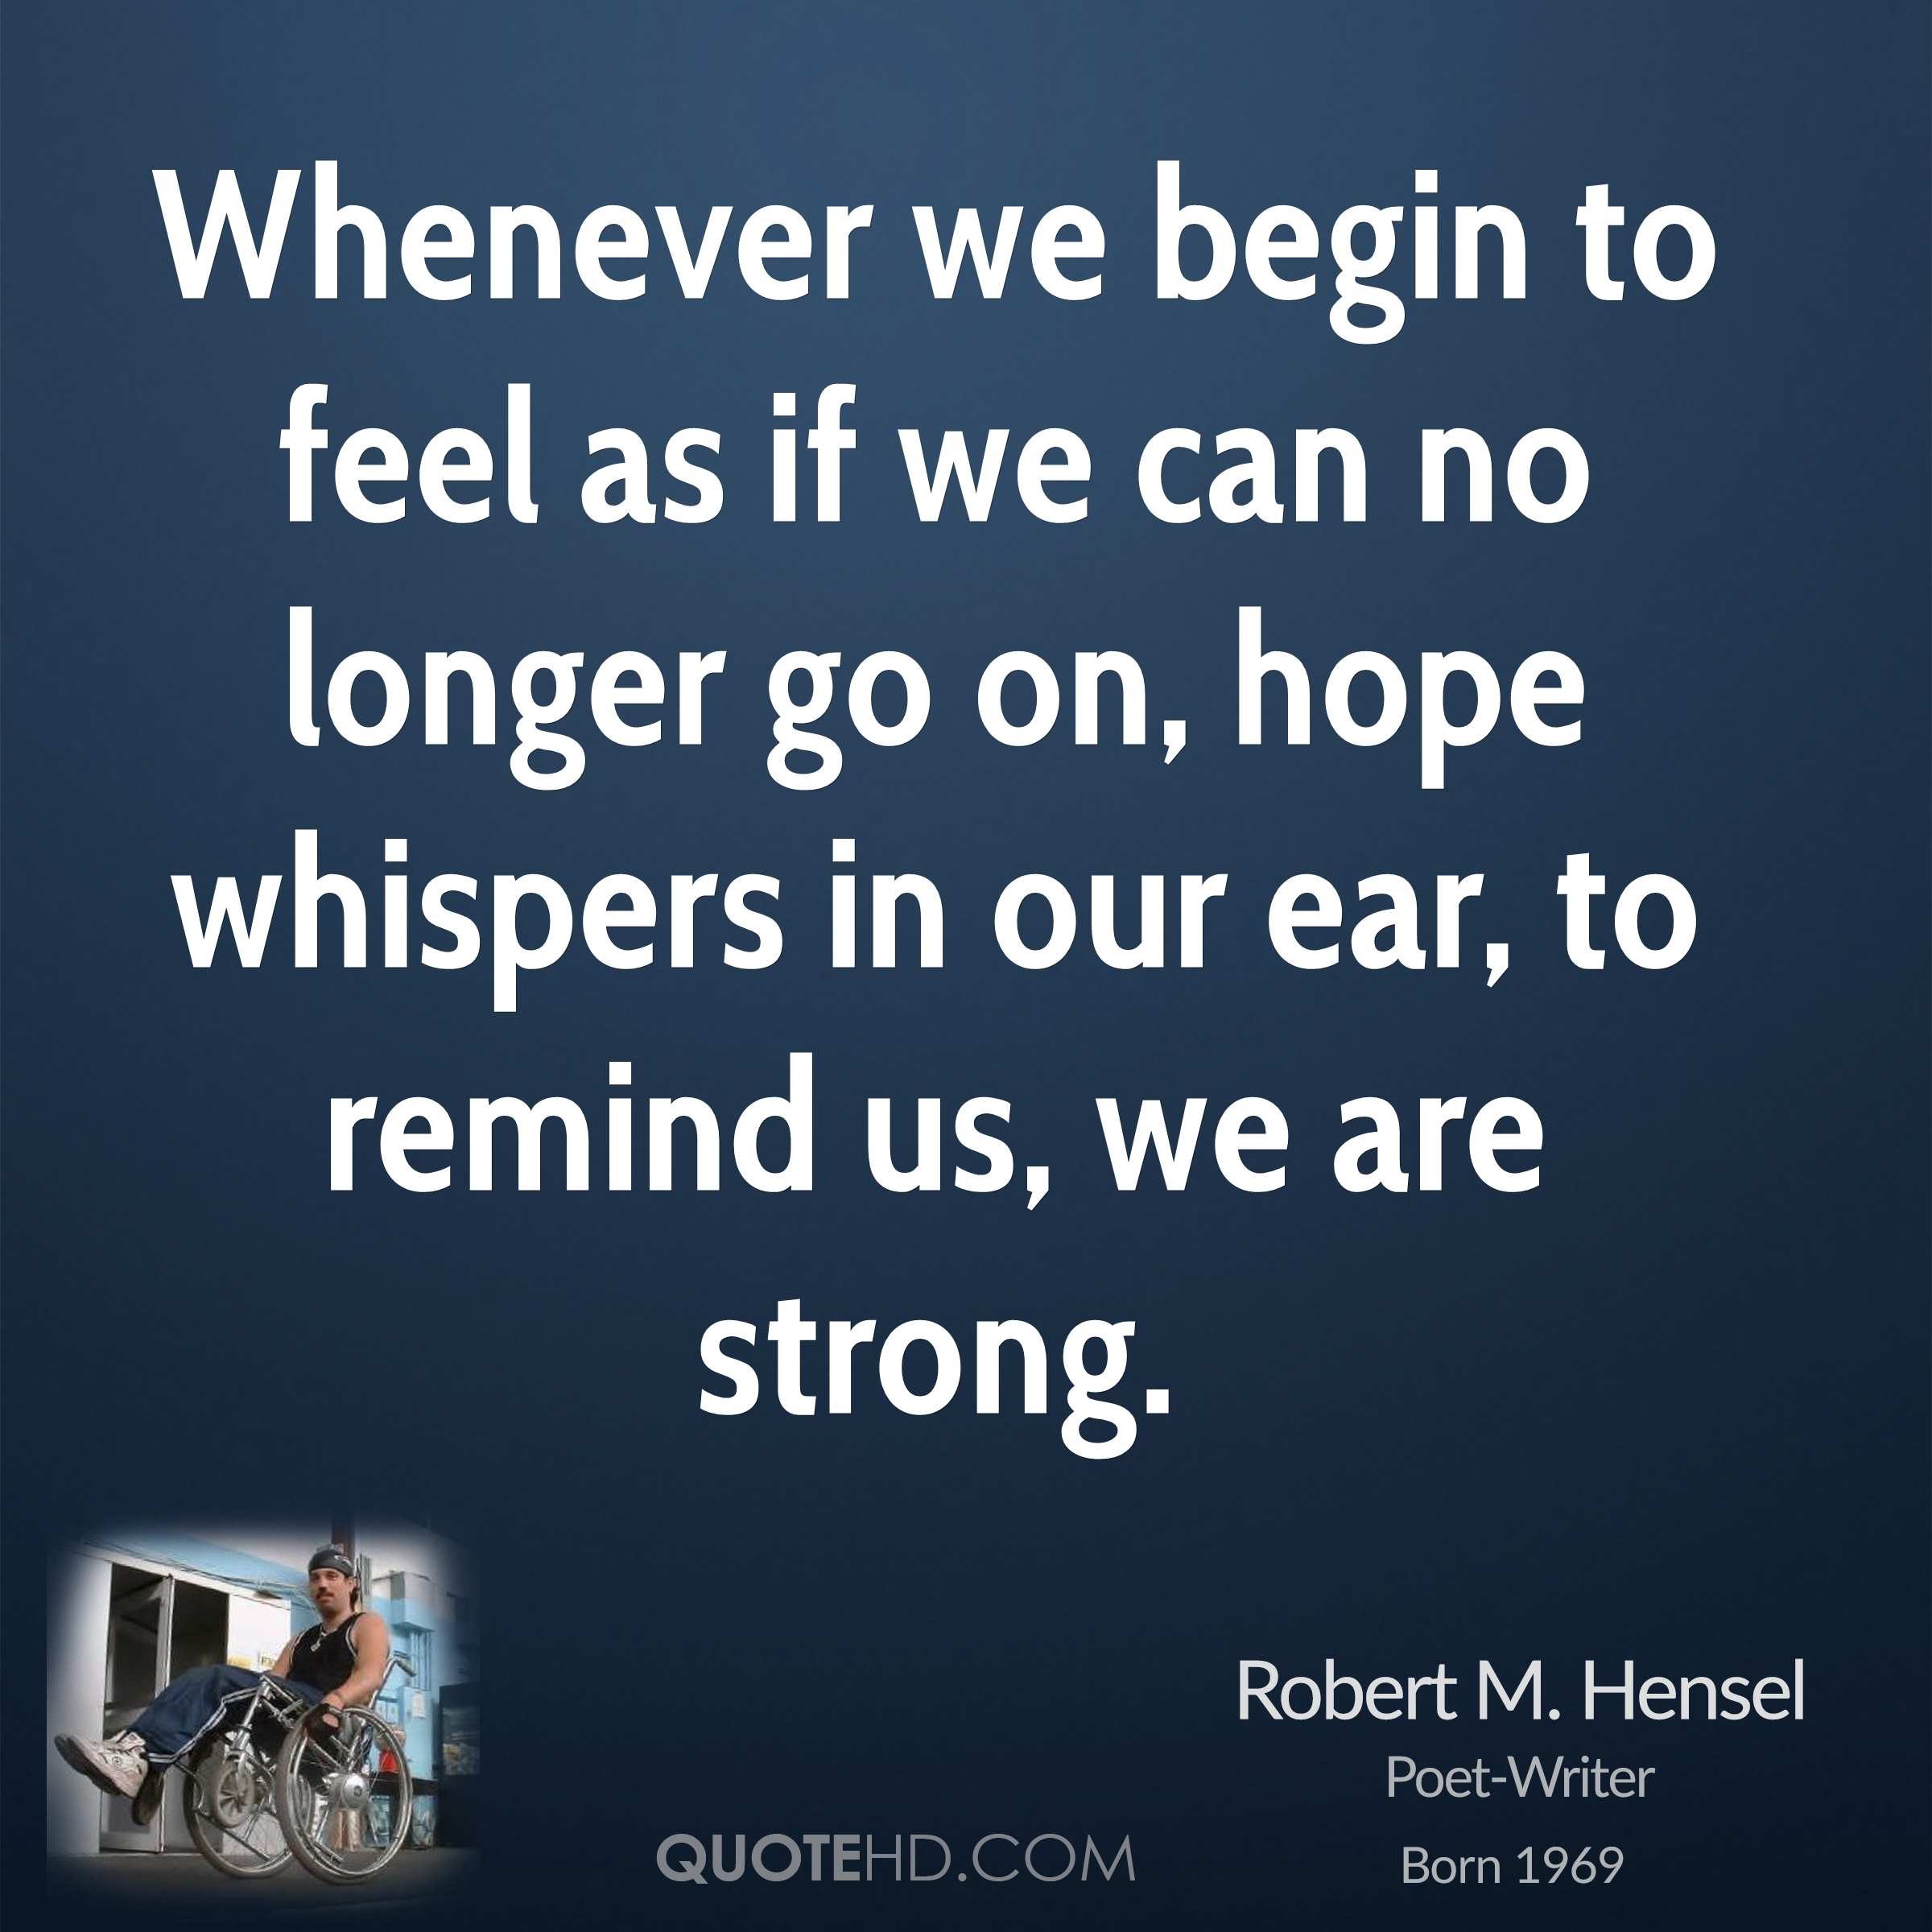 Whenever we begin to feel as if we can no longer go on, hope whispers in our ear, to remind us, we are strong.